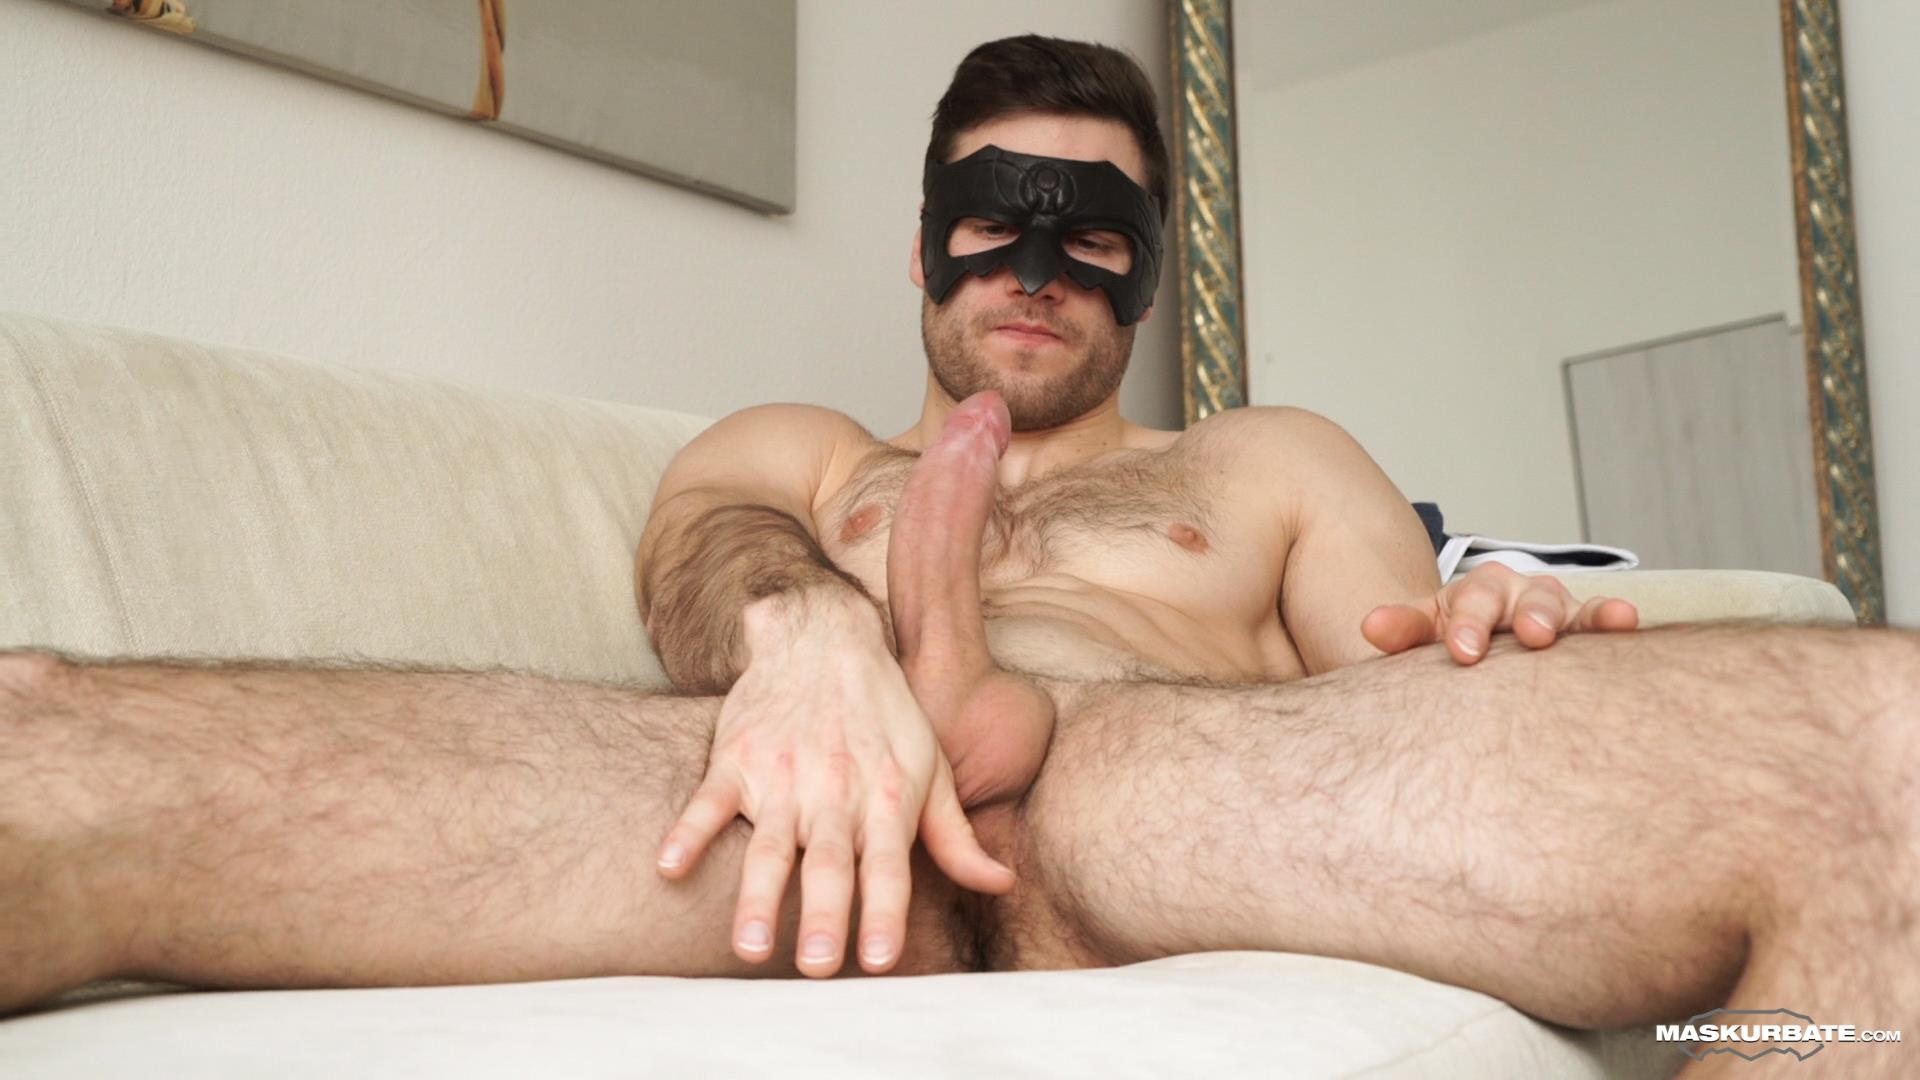 Maskurbate-Sam-Cuthan-Straight-Naked-Hairy-Muscle-Guy-Jerk-off-12 Straight Masked Hairy Muscle Hunk Strokes His Big Uncut Cock